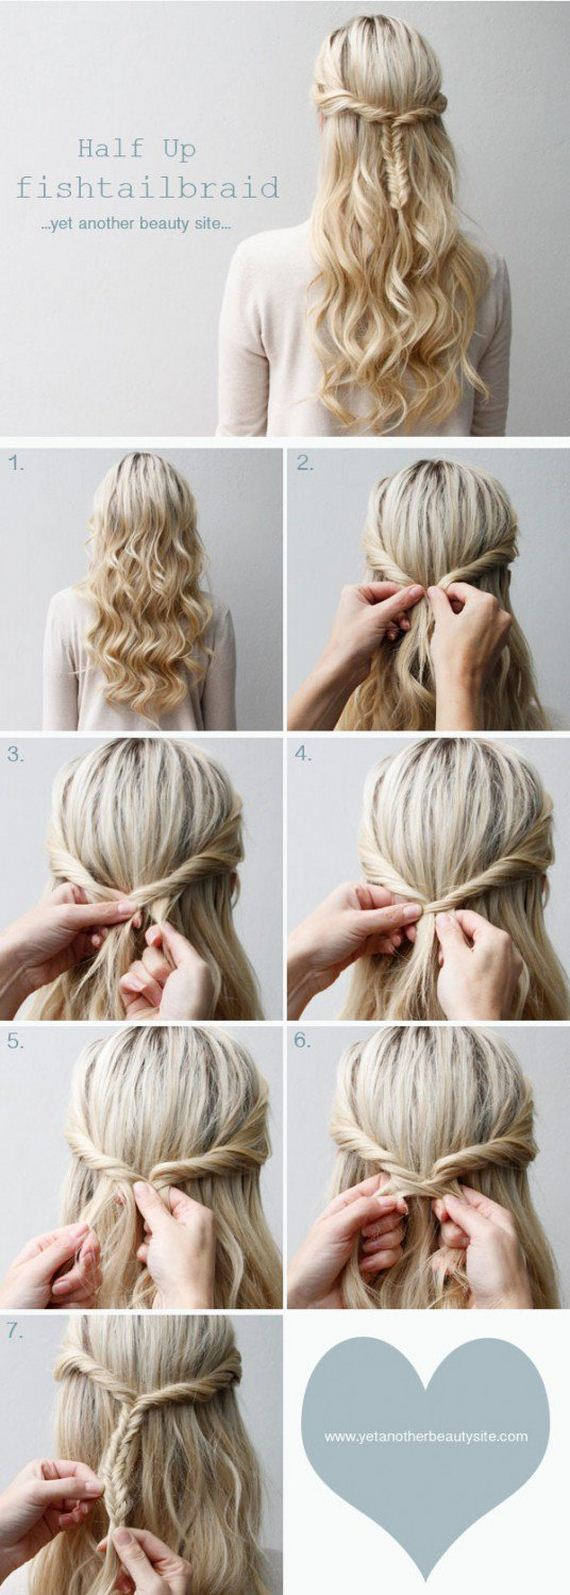 13-DIY-Hairstyles-for-Long-Hair